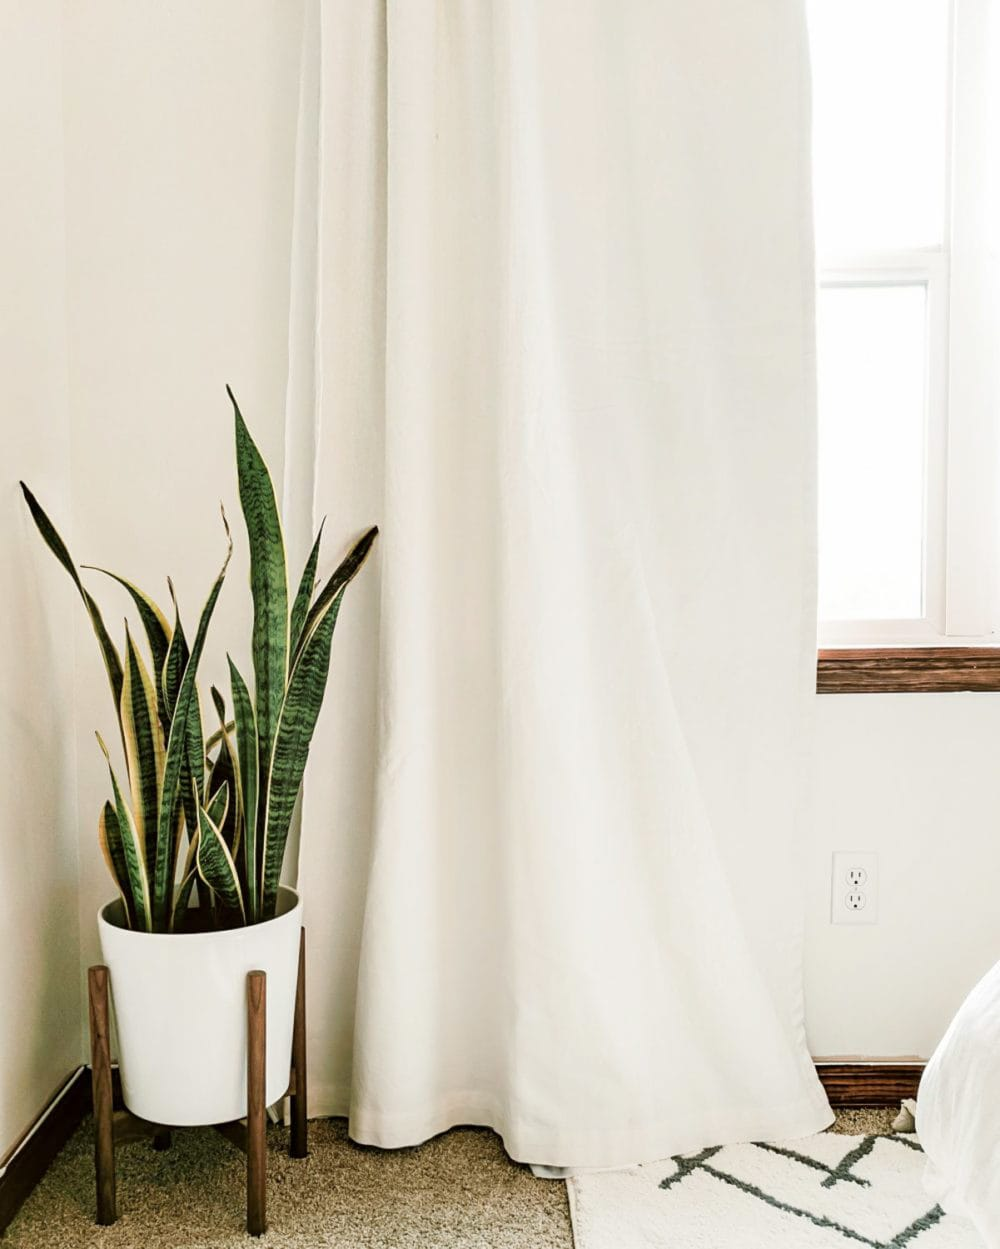 Bedroom with a plant in the corner and light pouring in from the window